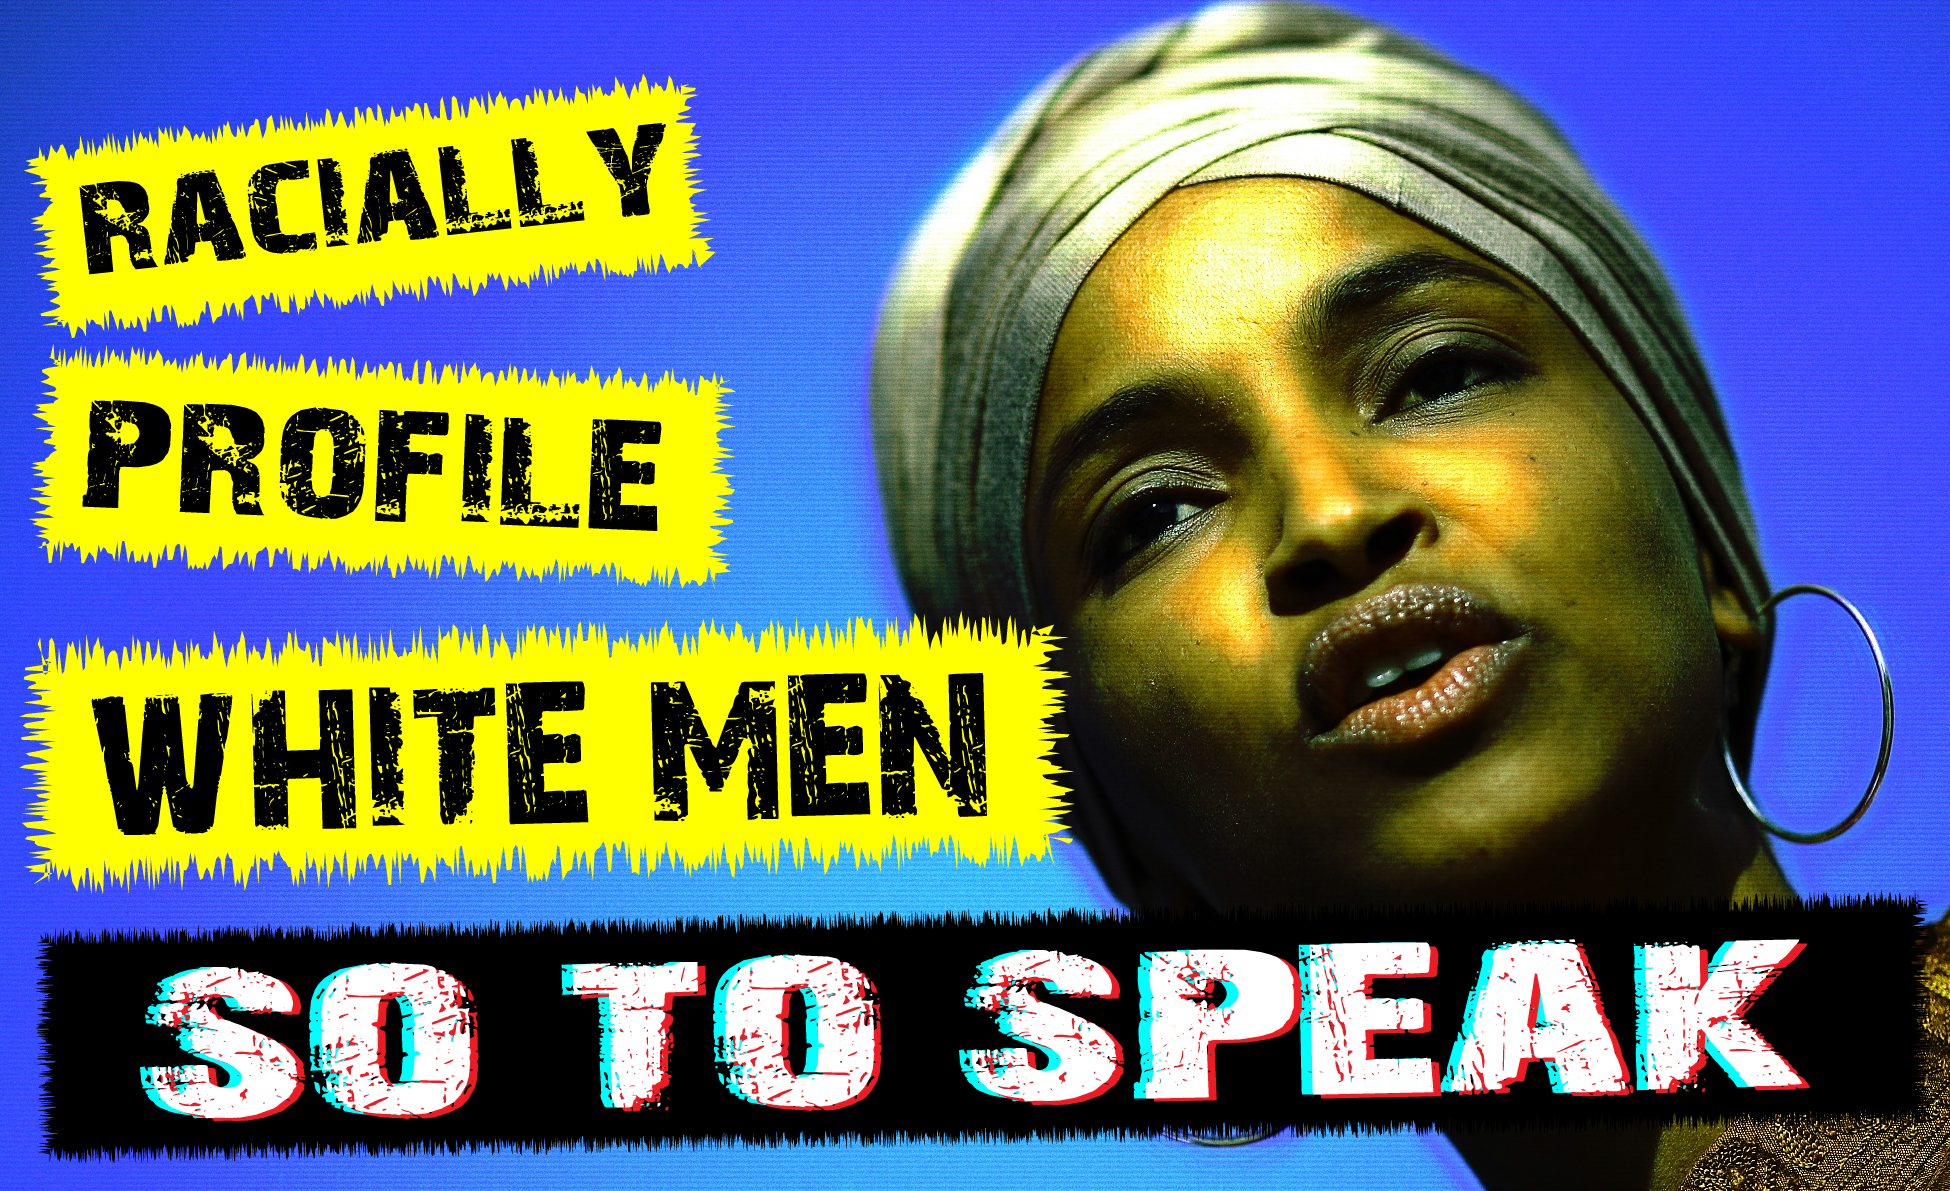 Ilhan Omar married her brother, hates America, committed immigration fraud, calls for racial profiling of white males